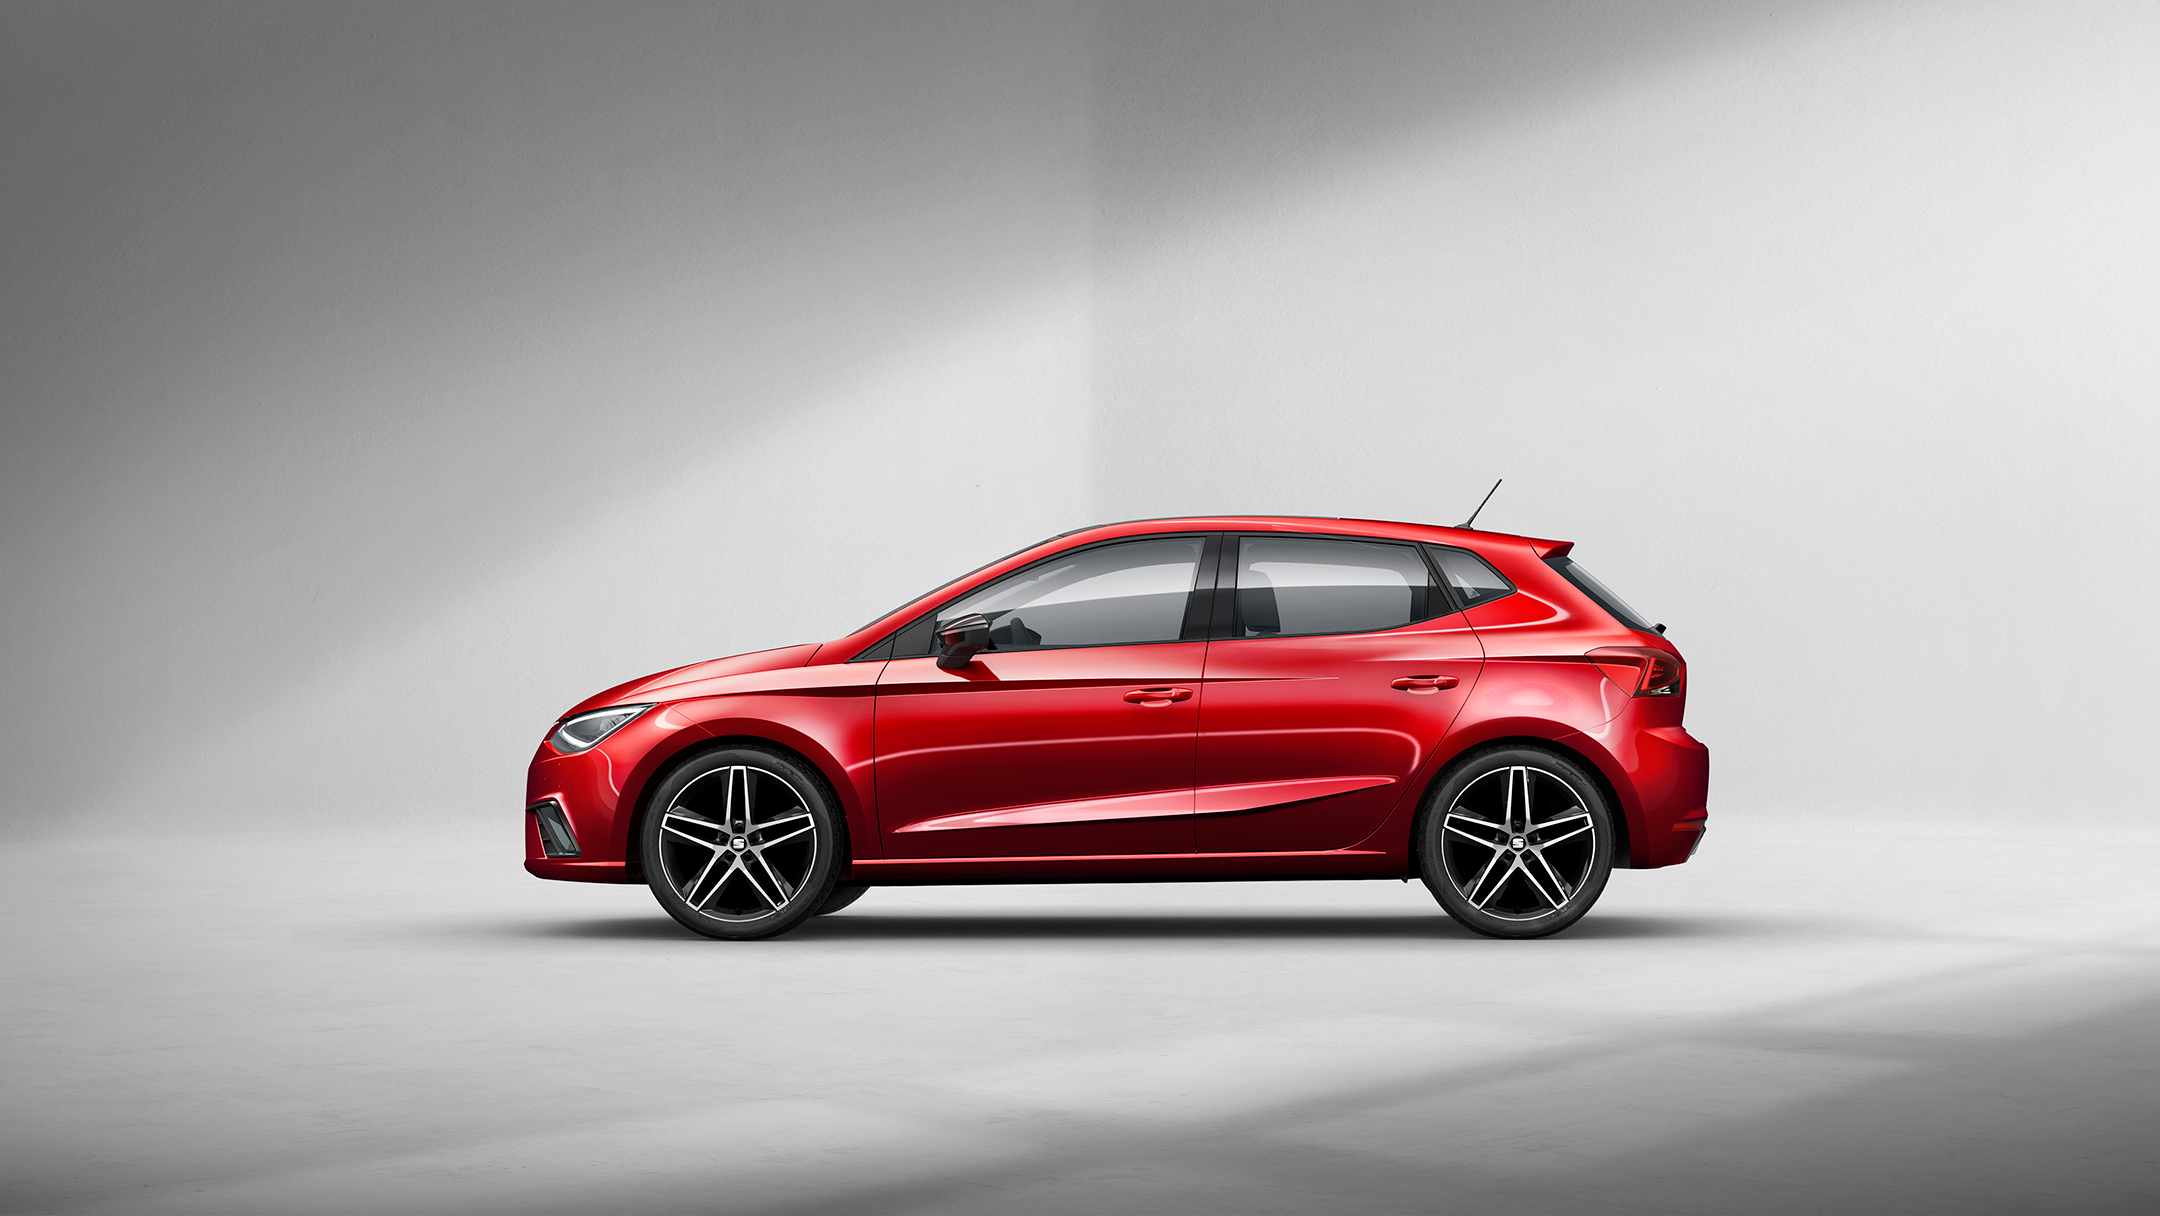 SEAT Ibiza 2017 - profil / side-face